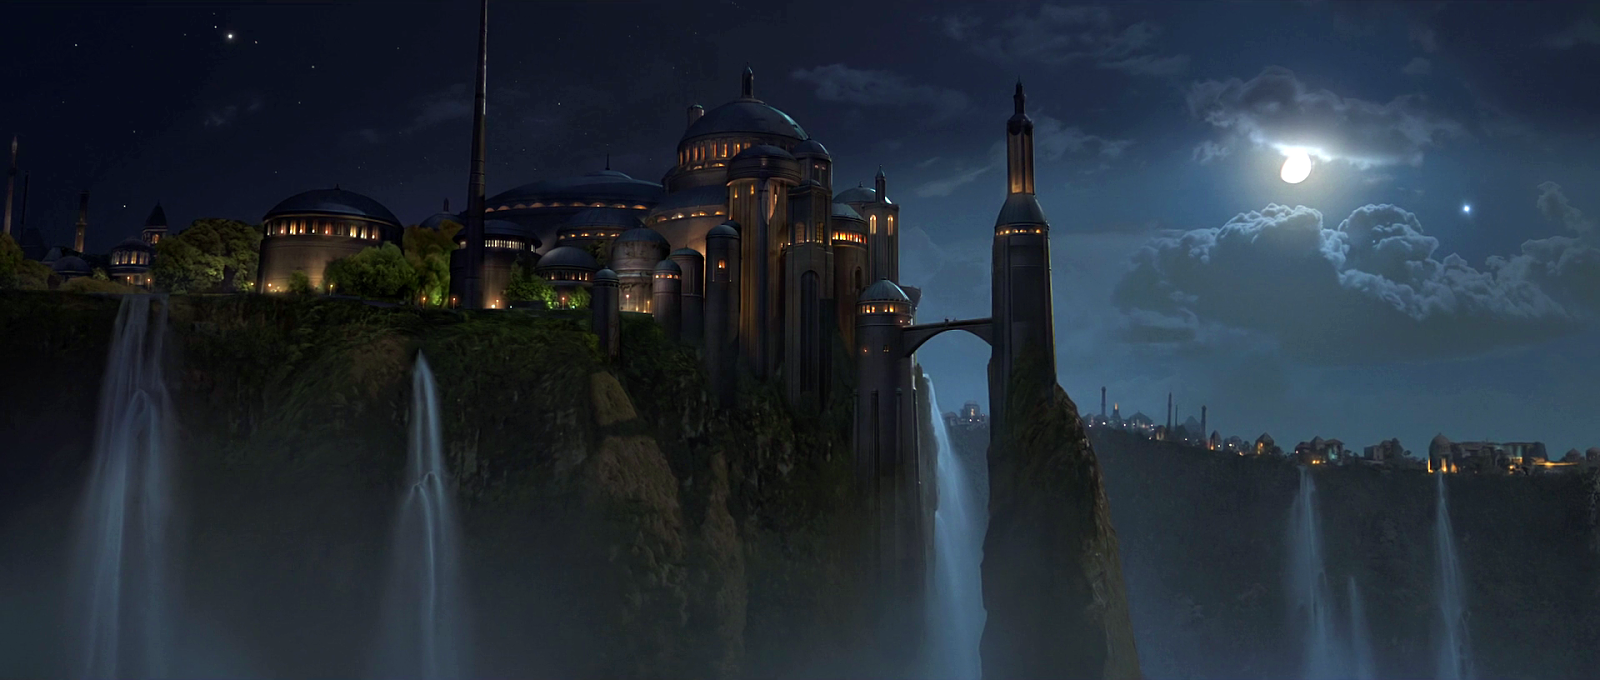 The Royal Palace of Naboo, located in the captial city of Theed from Star Wars.